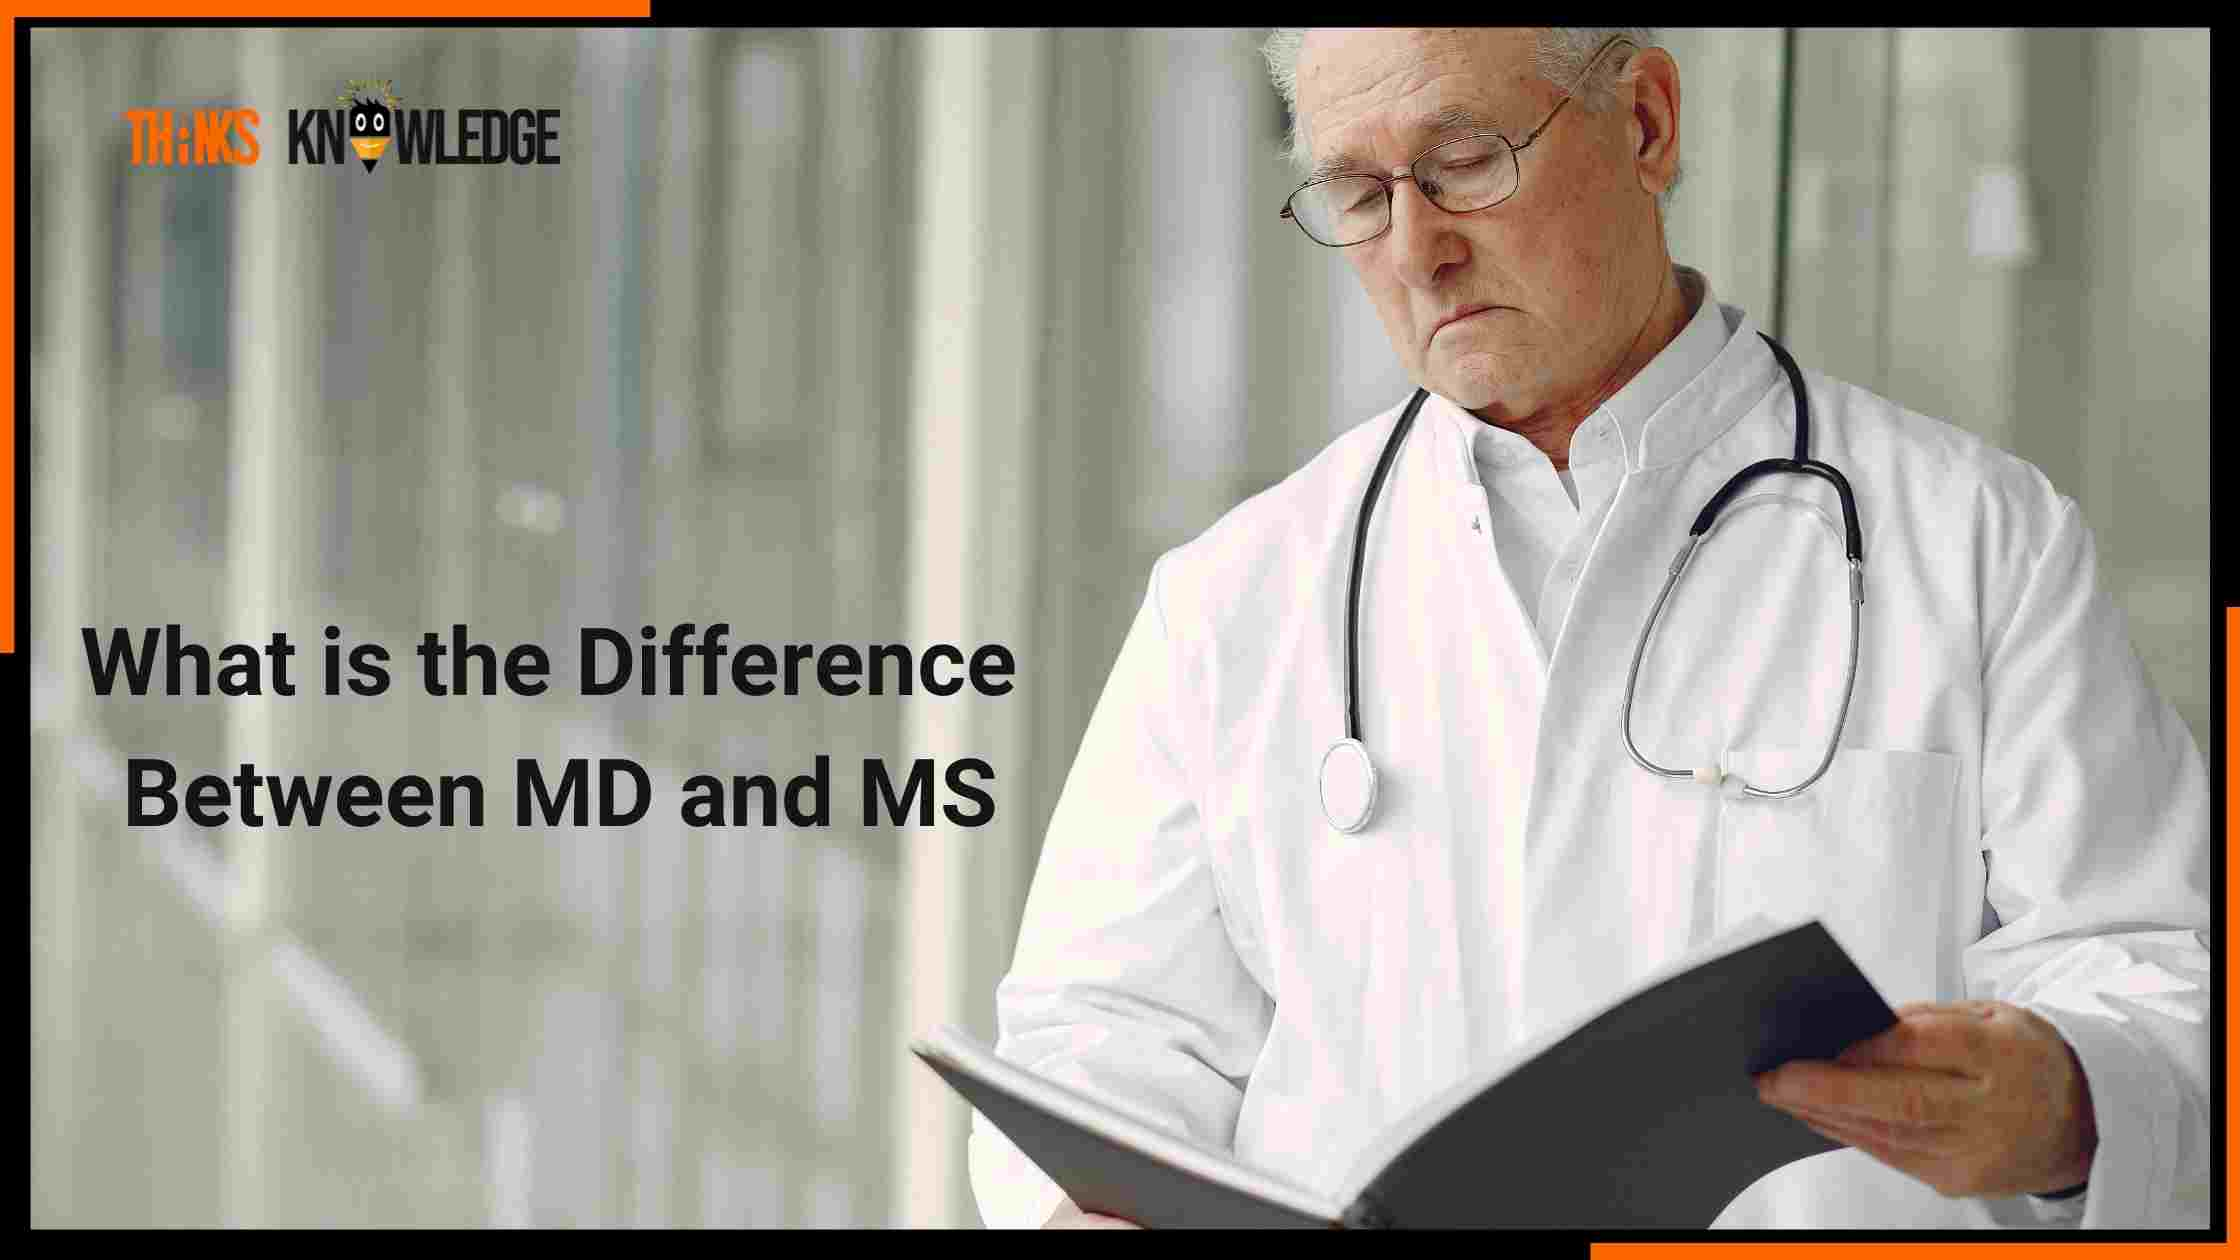 Difference Between MD and MS